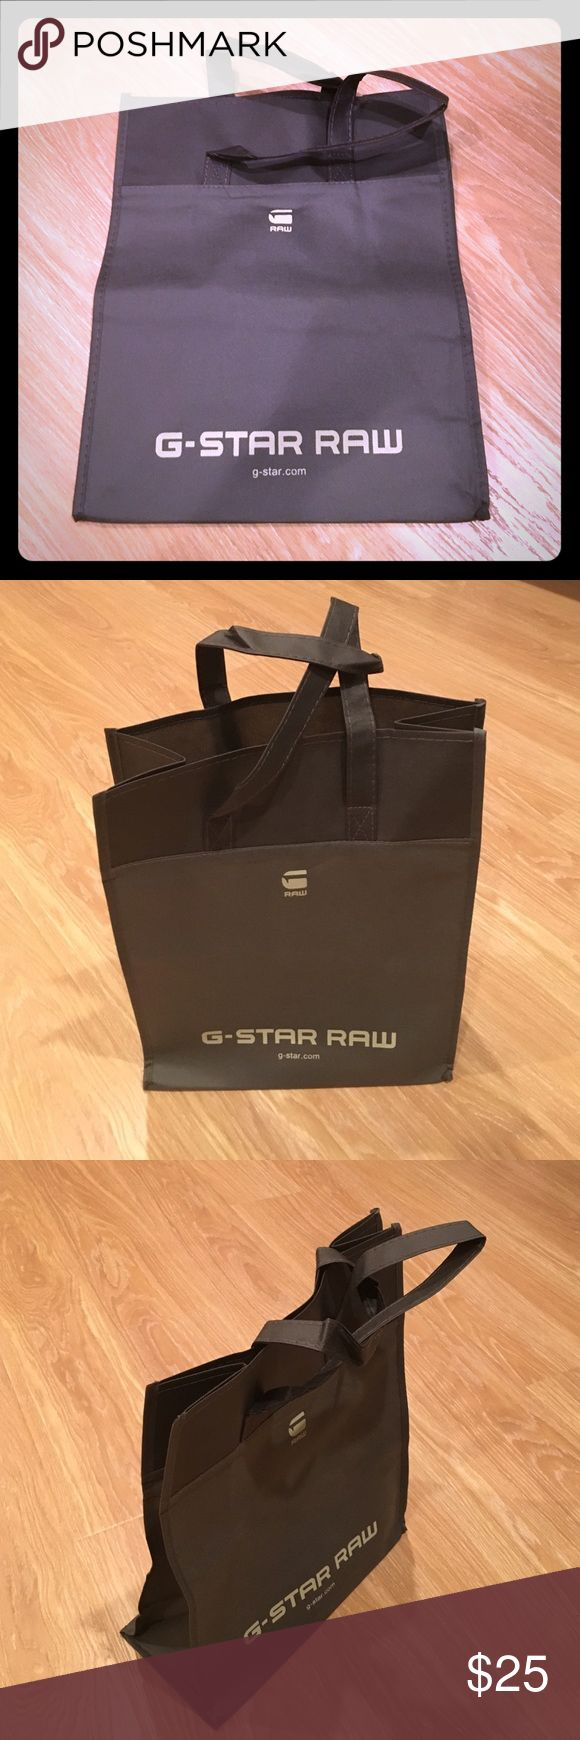 "G-STAR RAW SHOPPING BAG G-star Raw shopping bag. Height: 15 1/4"" width:11.75"" depth:6"". Never been used. Perfect condition. G-Star Bags"